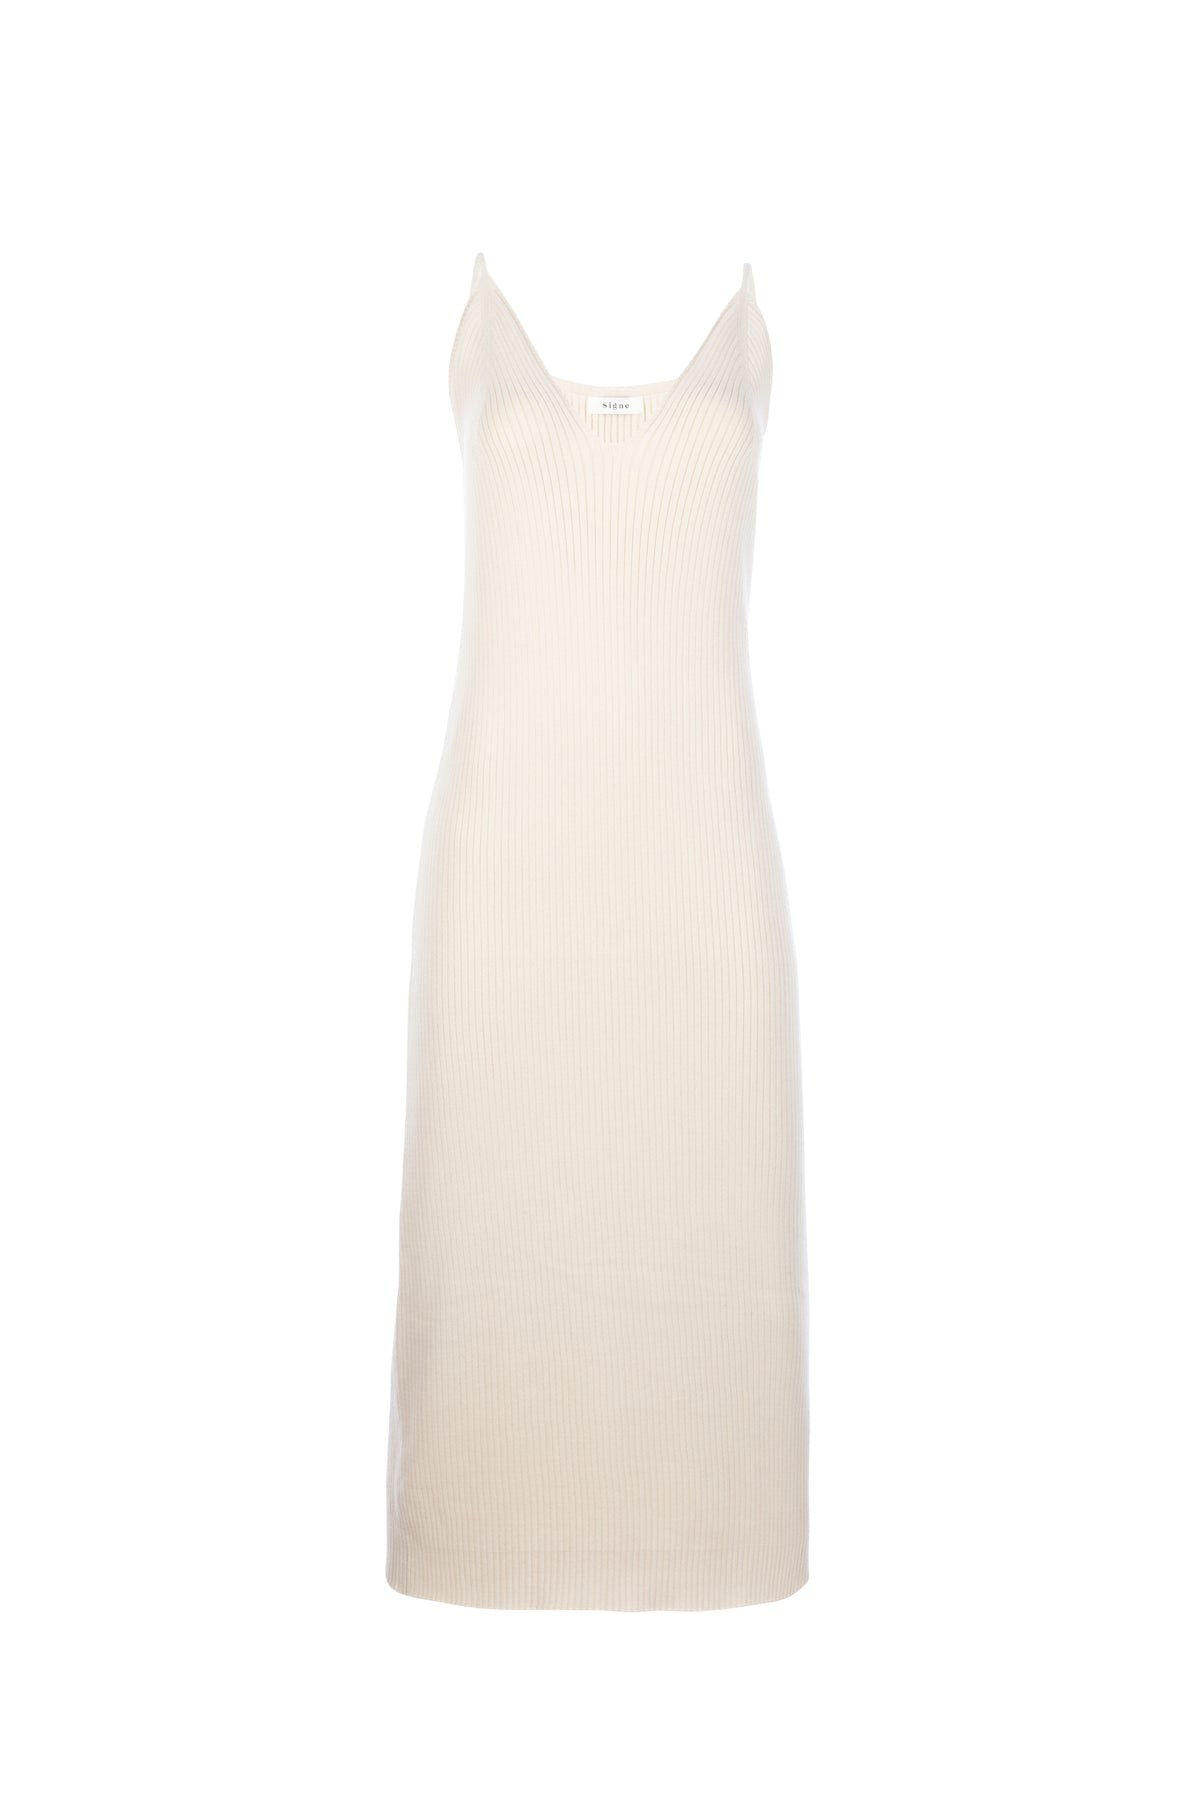 By Signe Damla Knit Dress in Ecru with a fitted silhouette crafted of ribbed knit